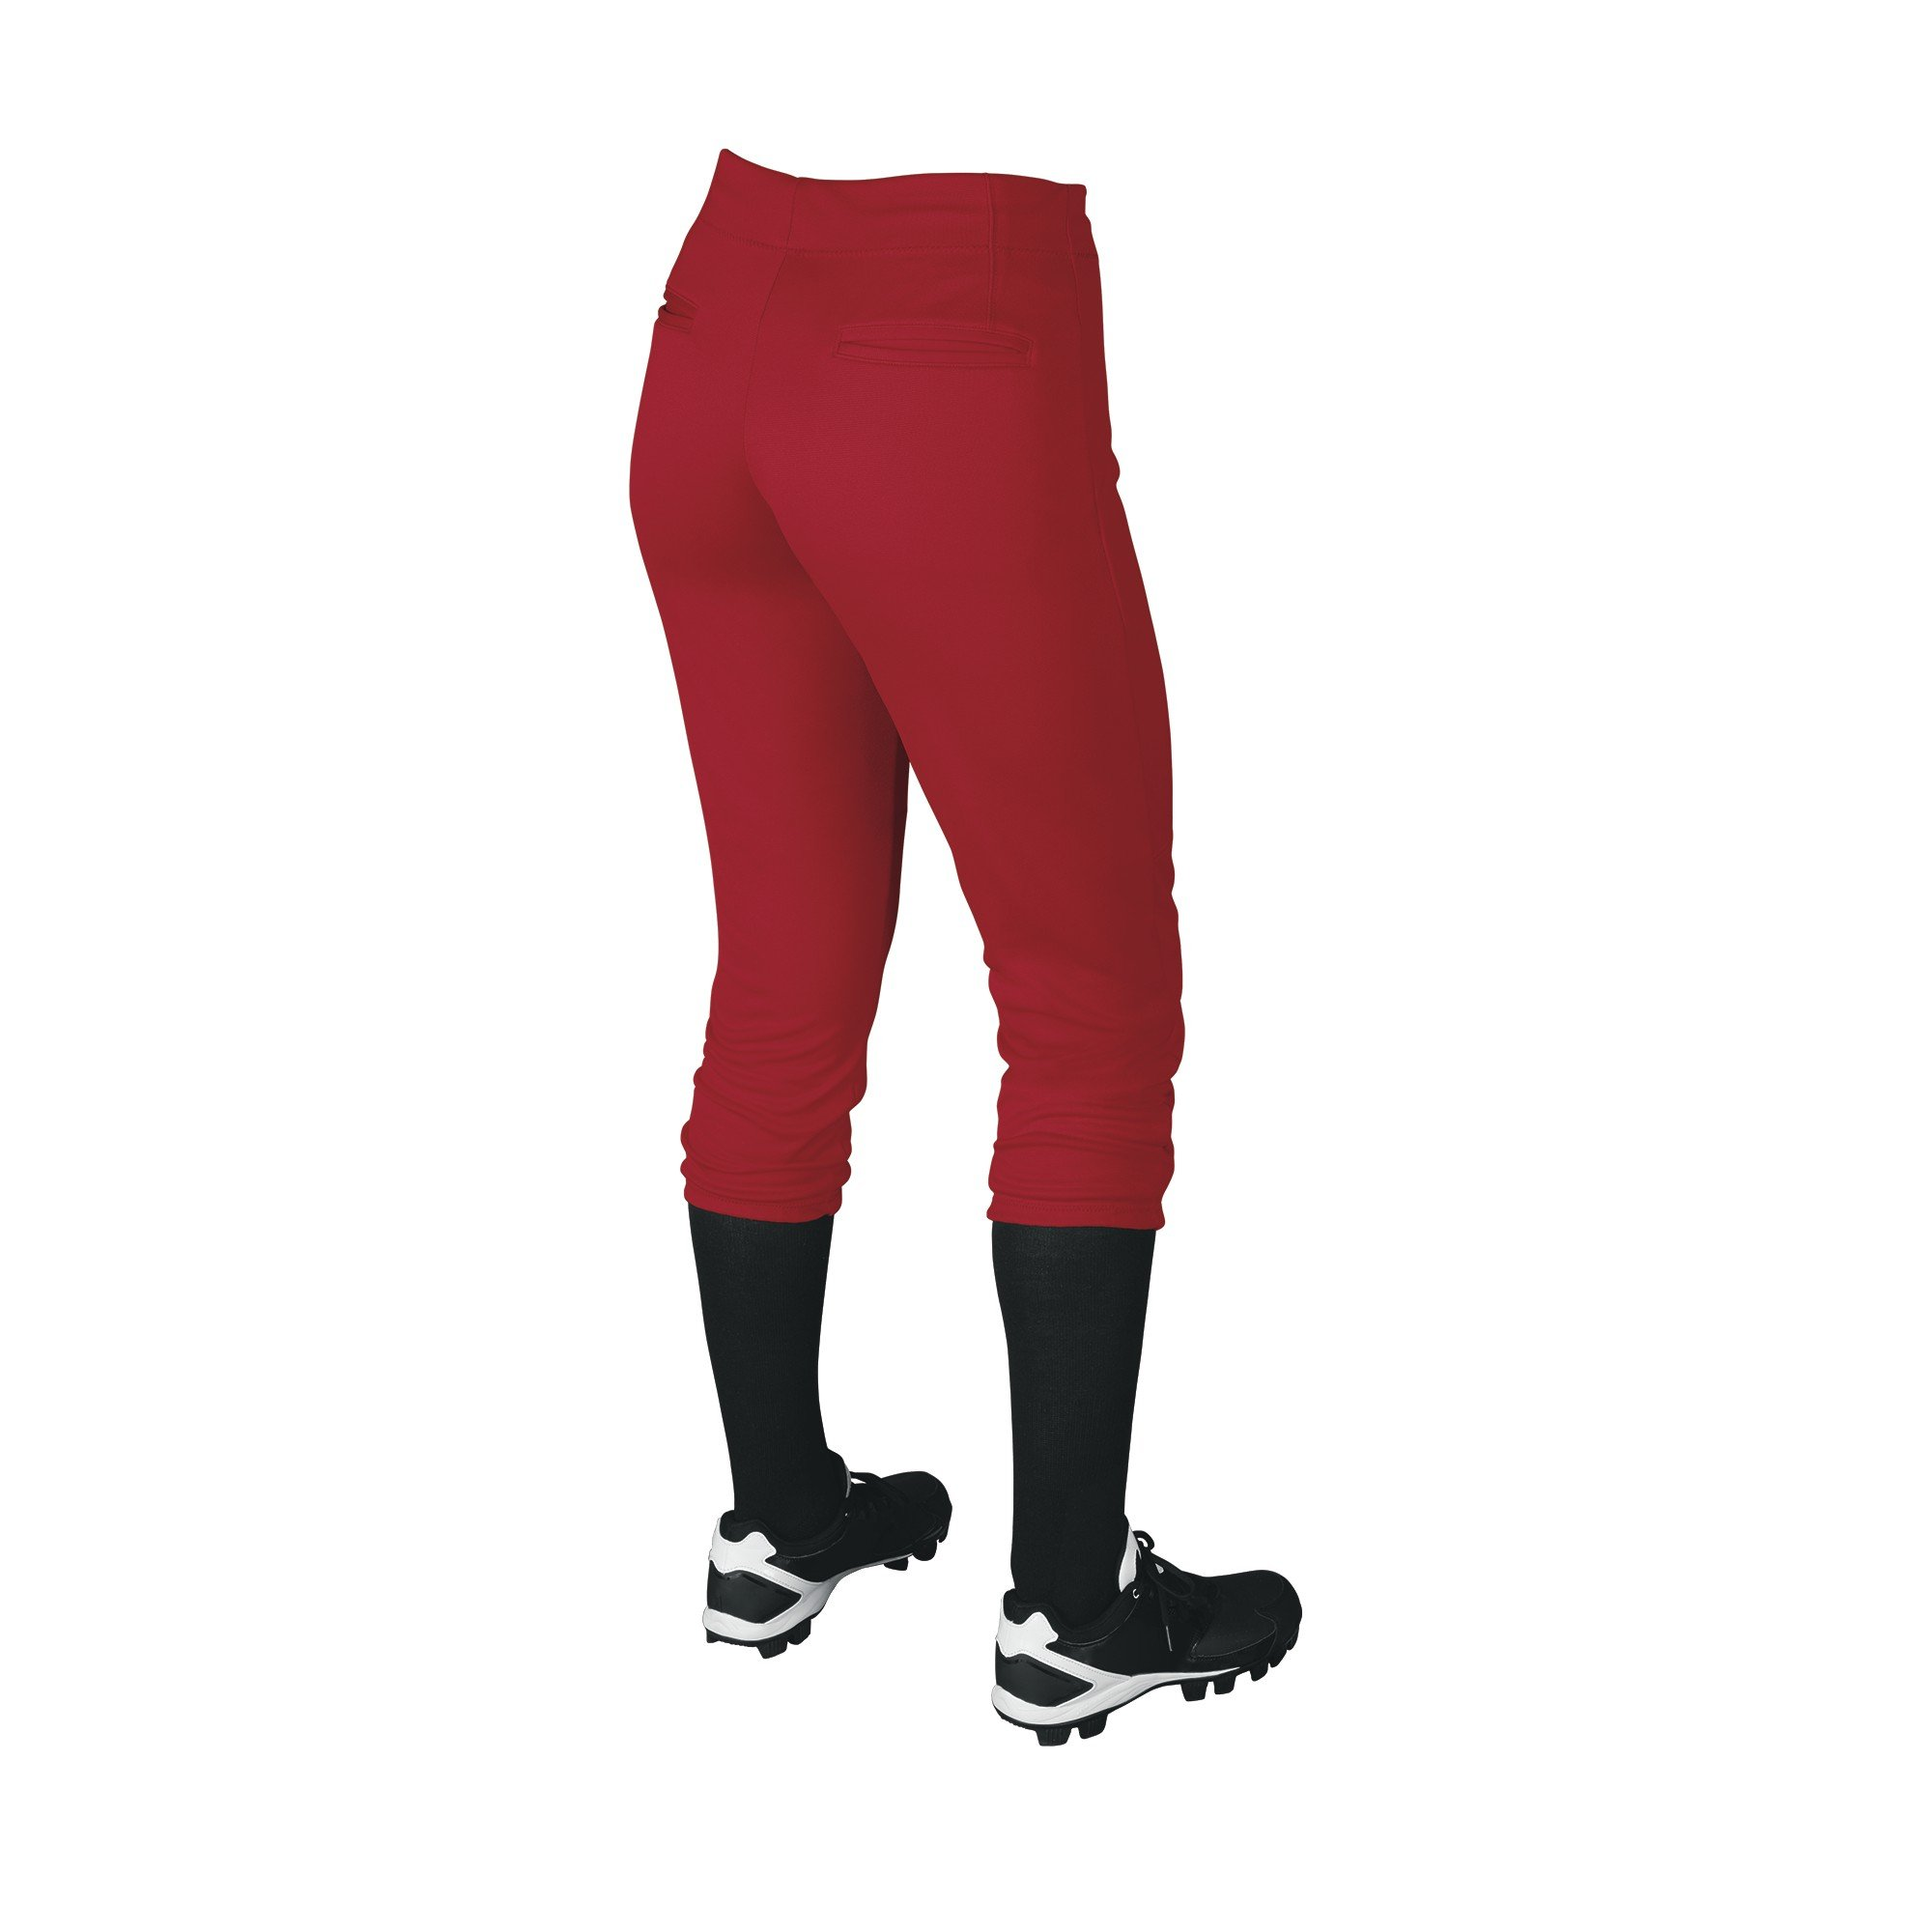 DeMarini Womens Sleek Pull Up Pant, Scarlet, Small by DeMarini (Image #2)